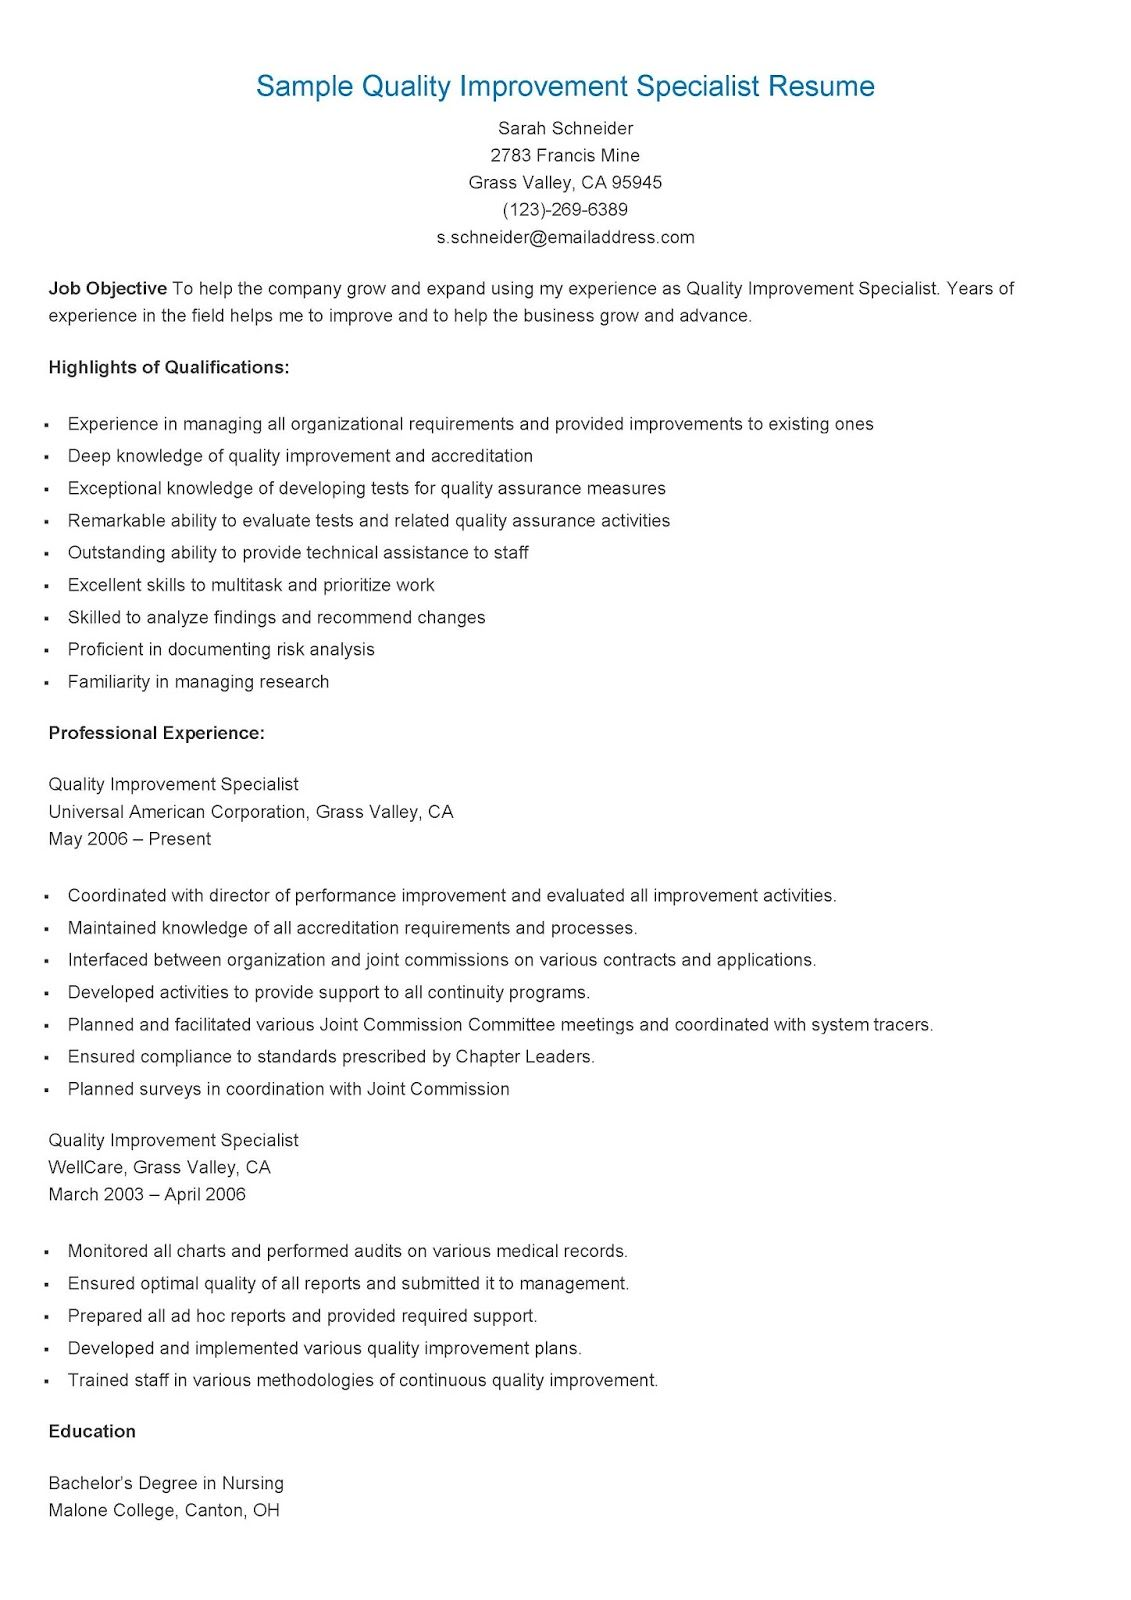 sample quality improvement specialist resume resame pinterest